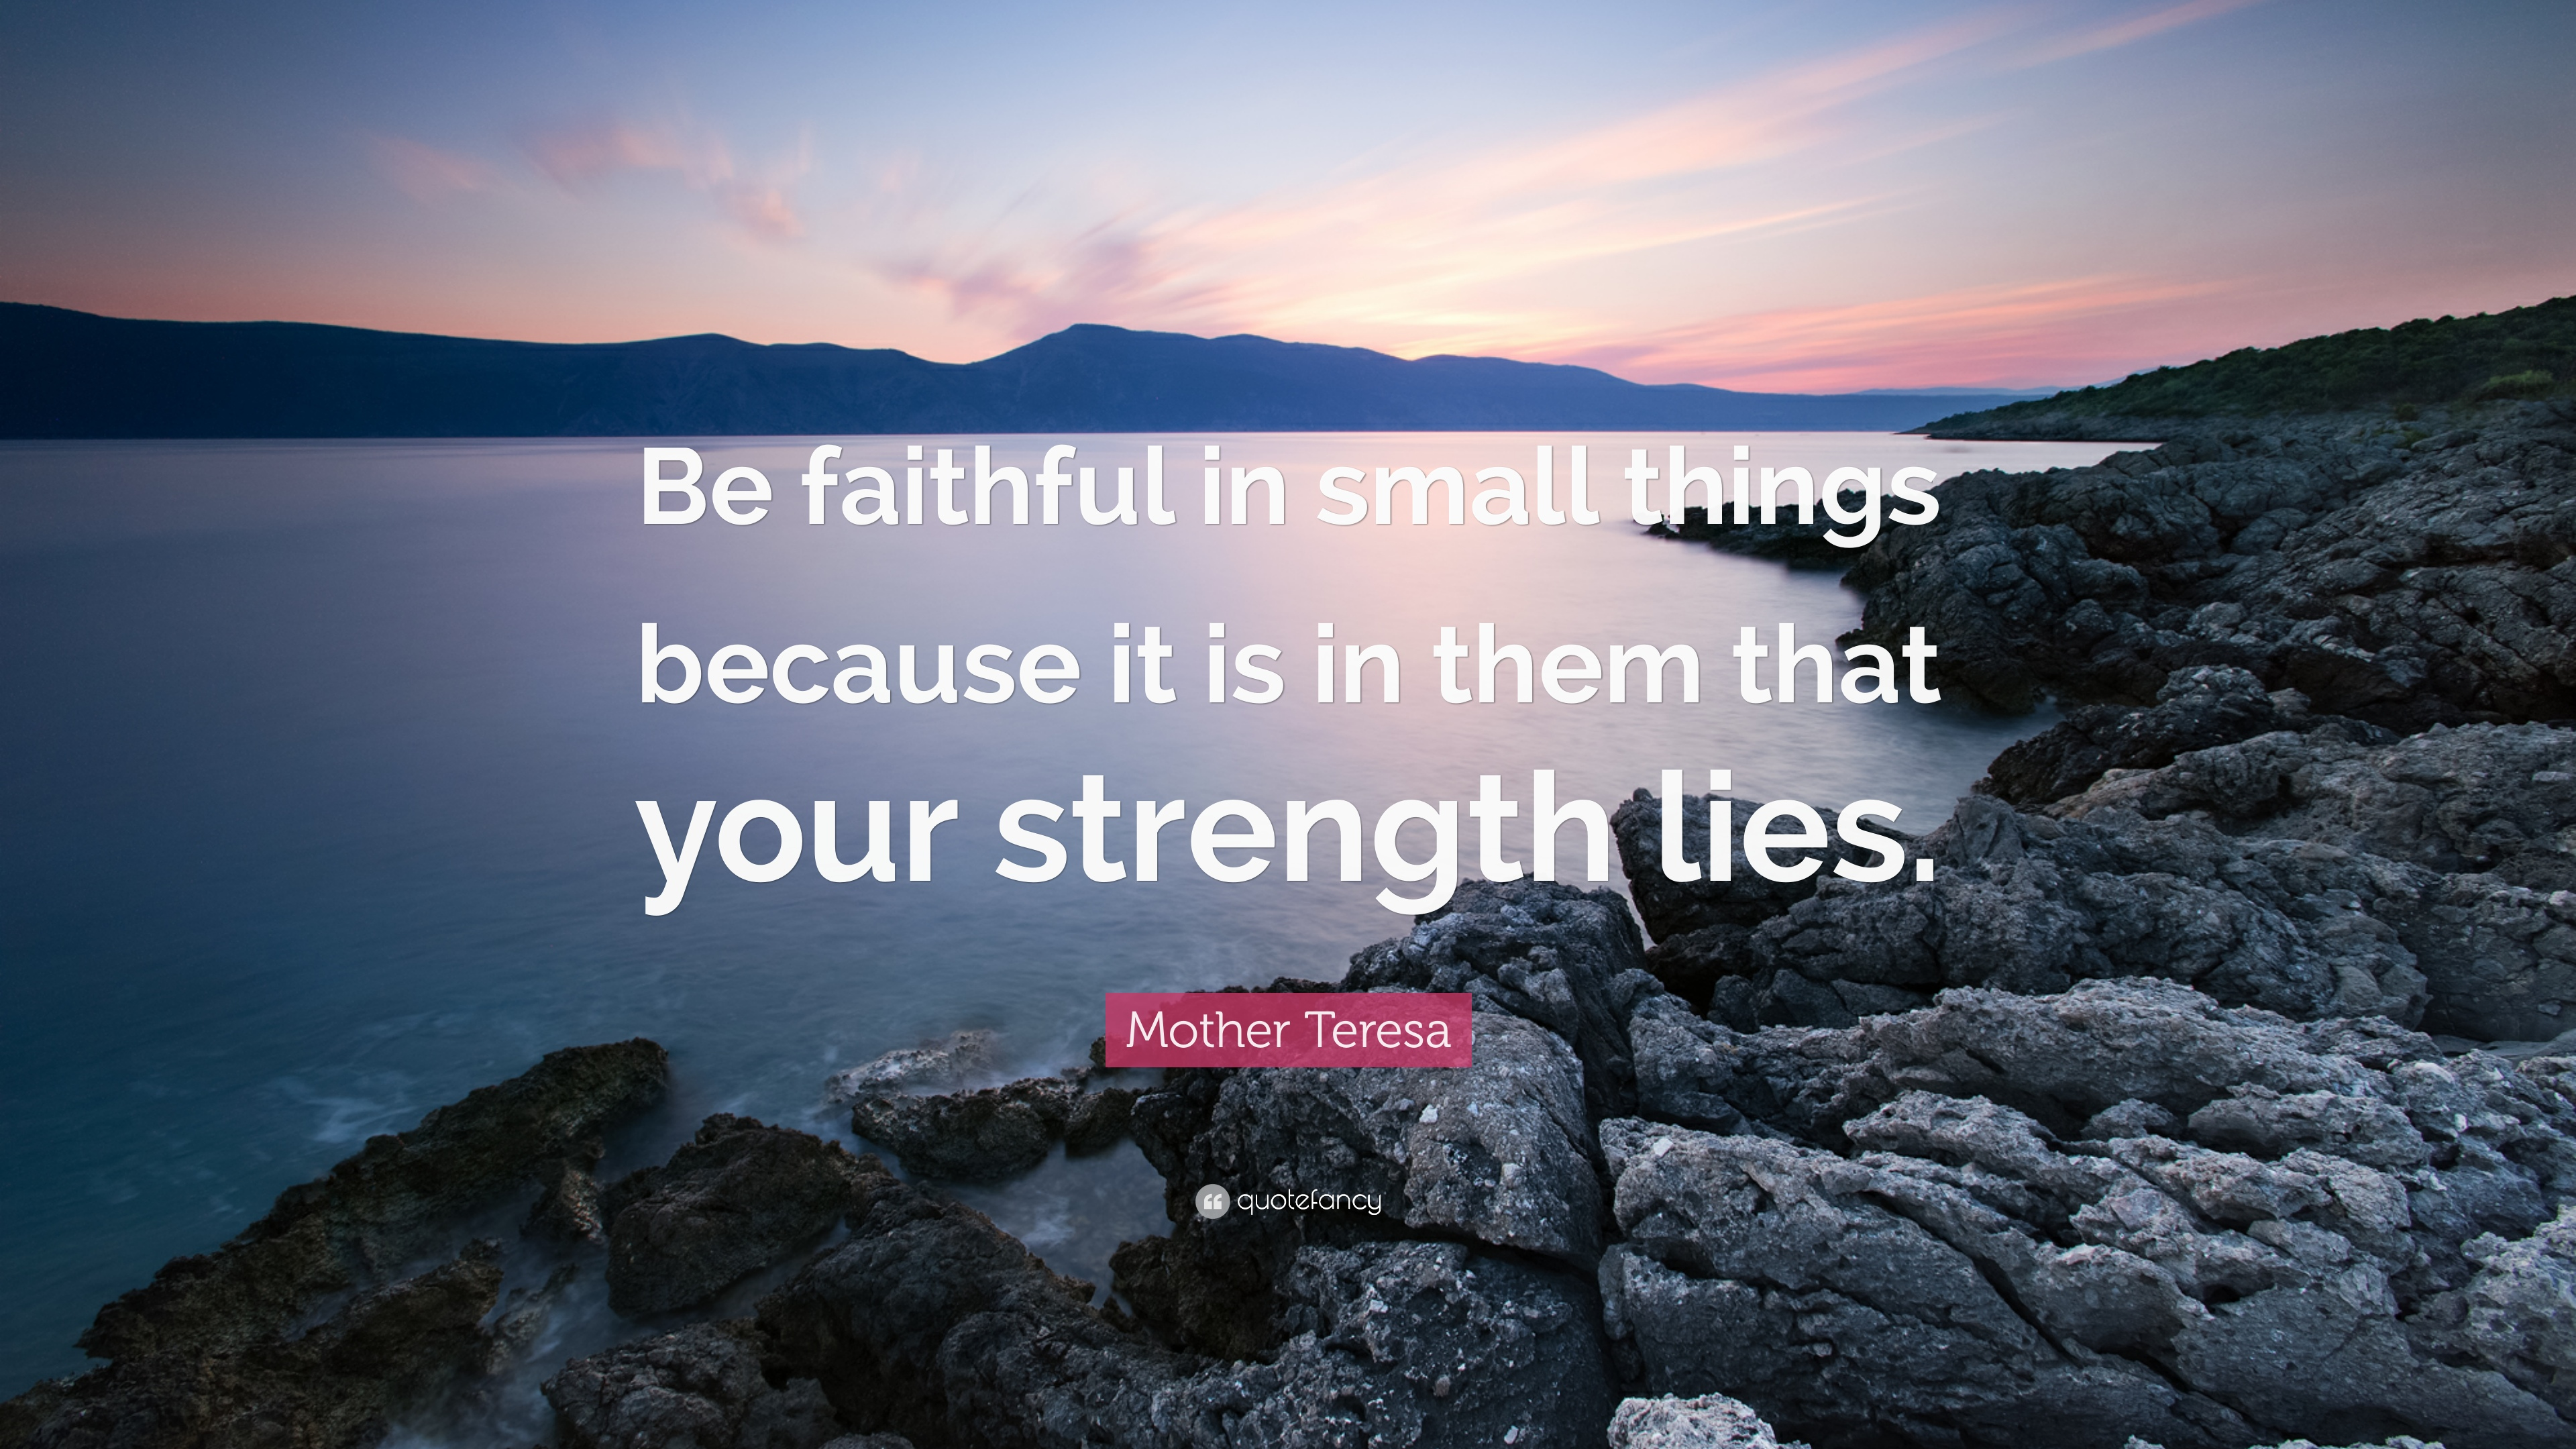 Mother Teresa Quote: Be faithful in small things because